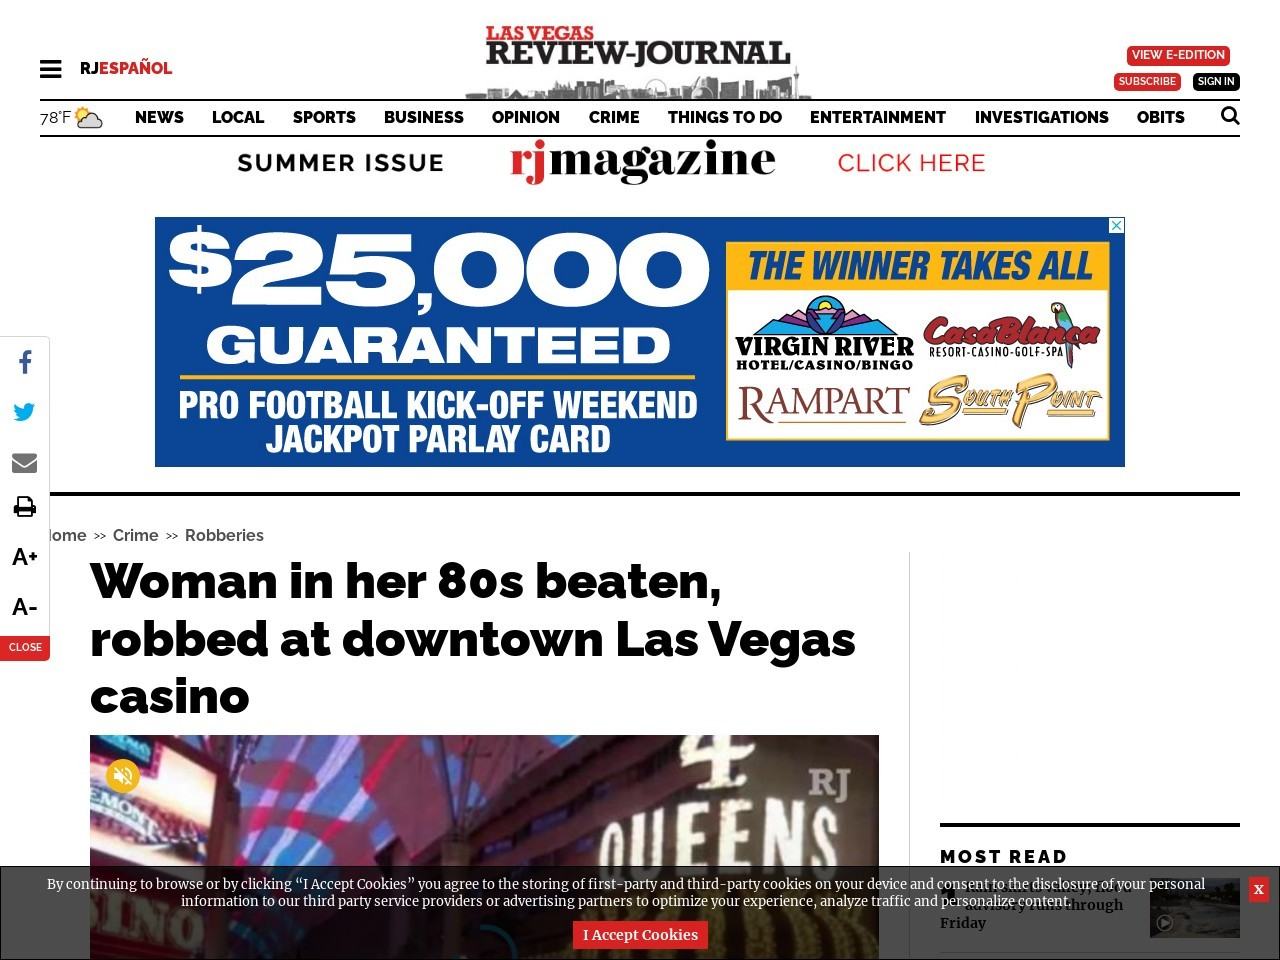 Woman in her 80s beaten, robbed at downtown Las Vegas casino